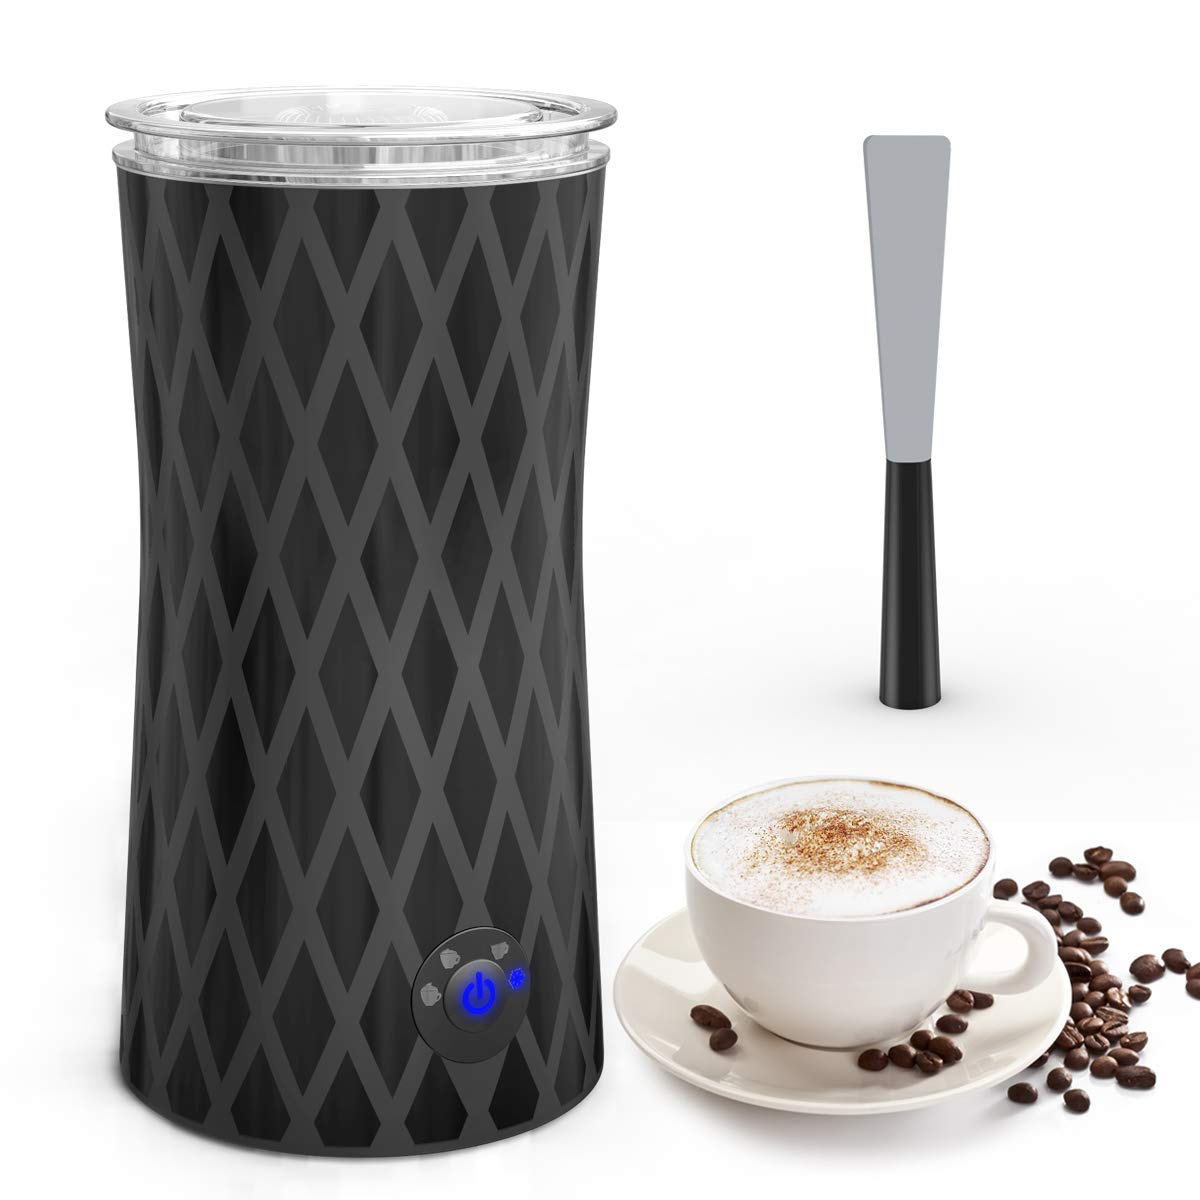 Automatic Milk Frother, Keenstone ElectricMilk Frother Electric, Keenstone Milk Steamer Frother and Warmer Hot or Cold Milk Froth with Non-Stick Interior Silent Operation for Latte Cappuccino Hot Chocolate (Frothing 115ML/Heating 250ML)